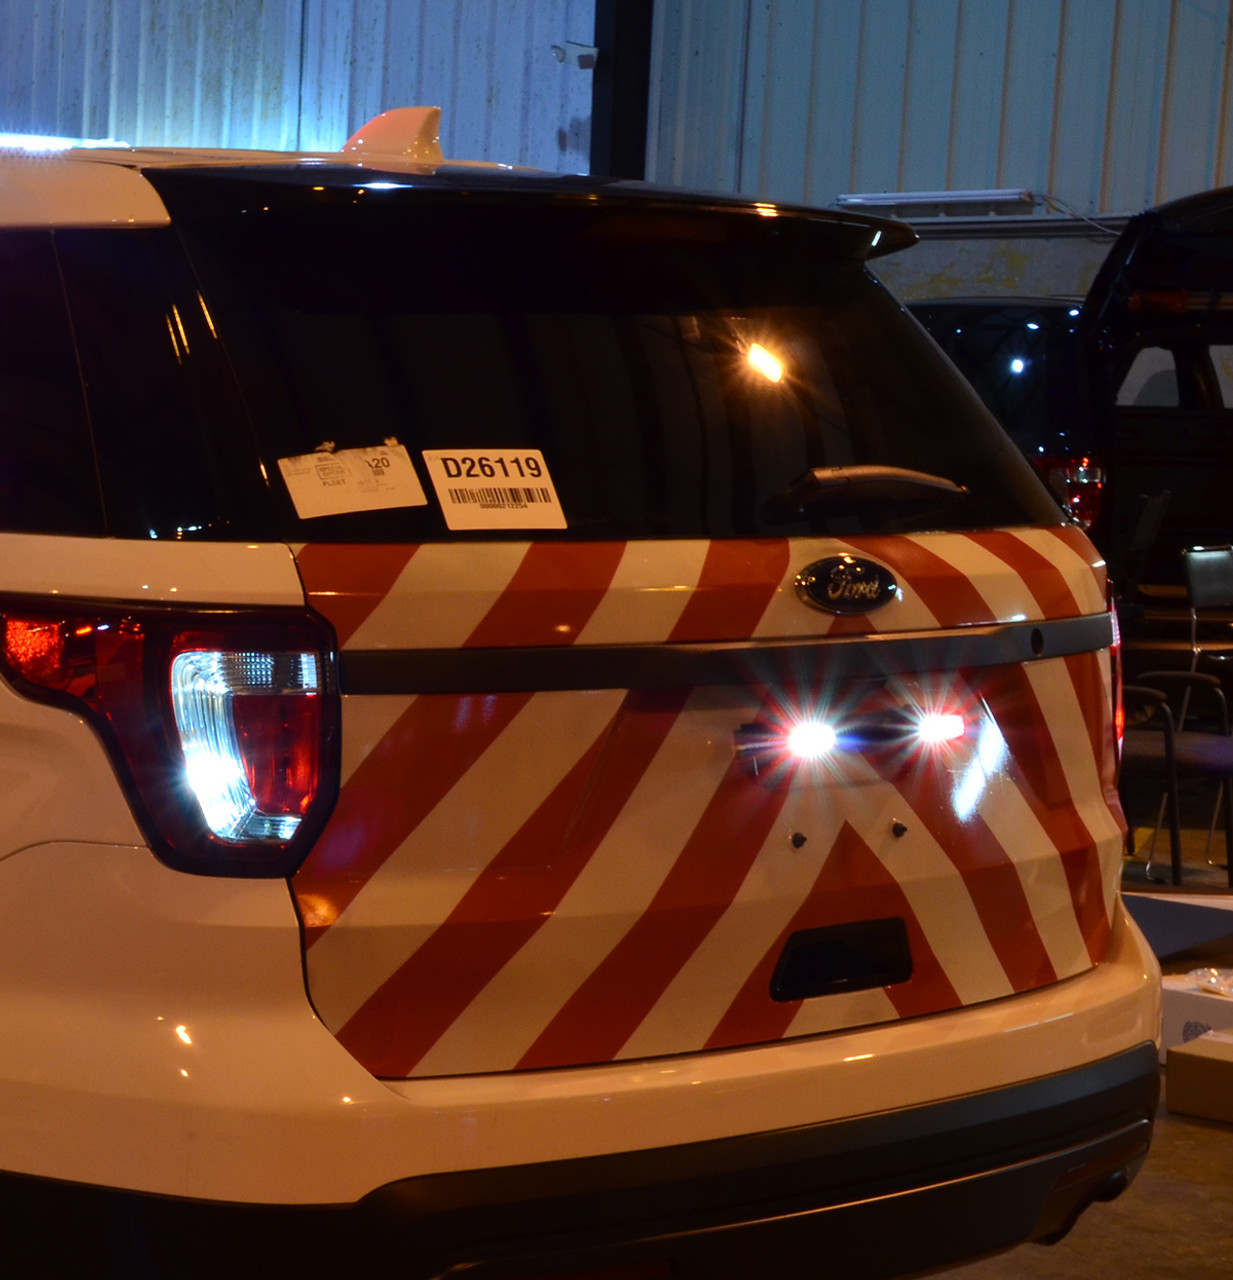 Ford Police Interceptor Utility SUV (Explorer) Chevron Emergency Vehicle Graphics with 3M Reflective Stripes, choose colors